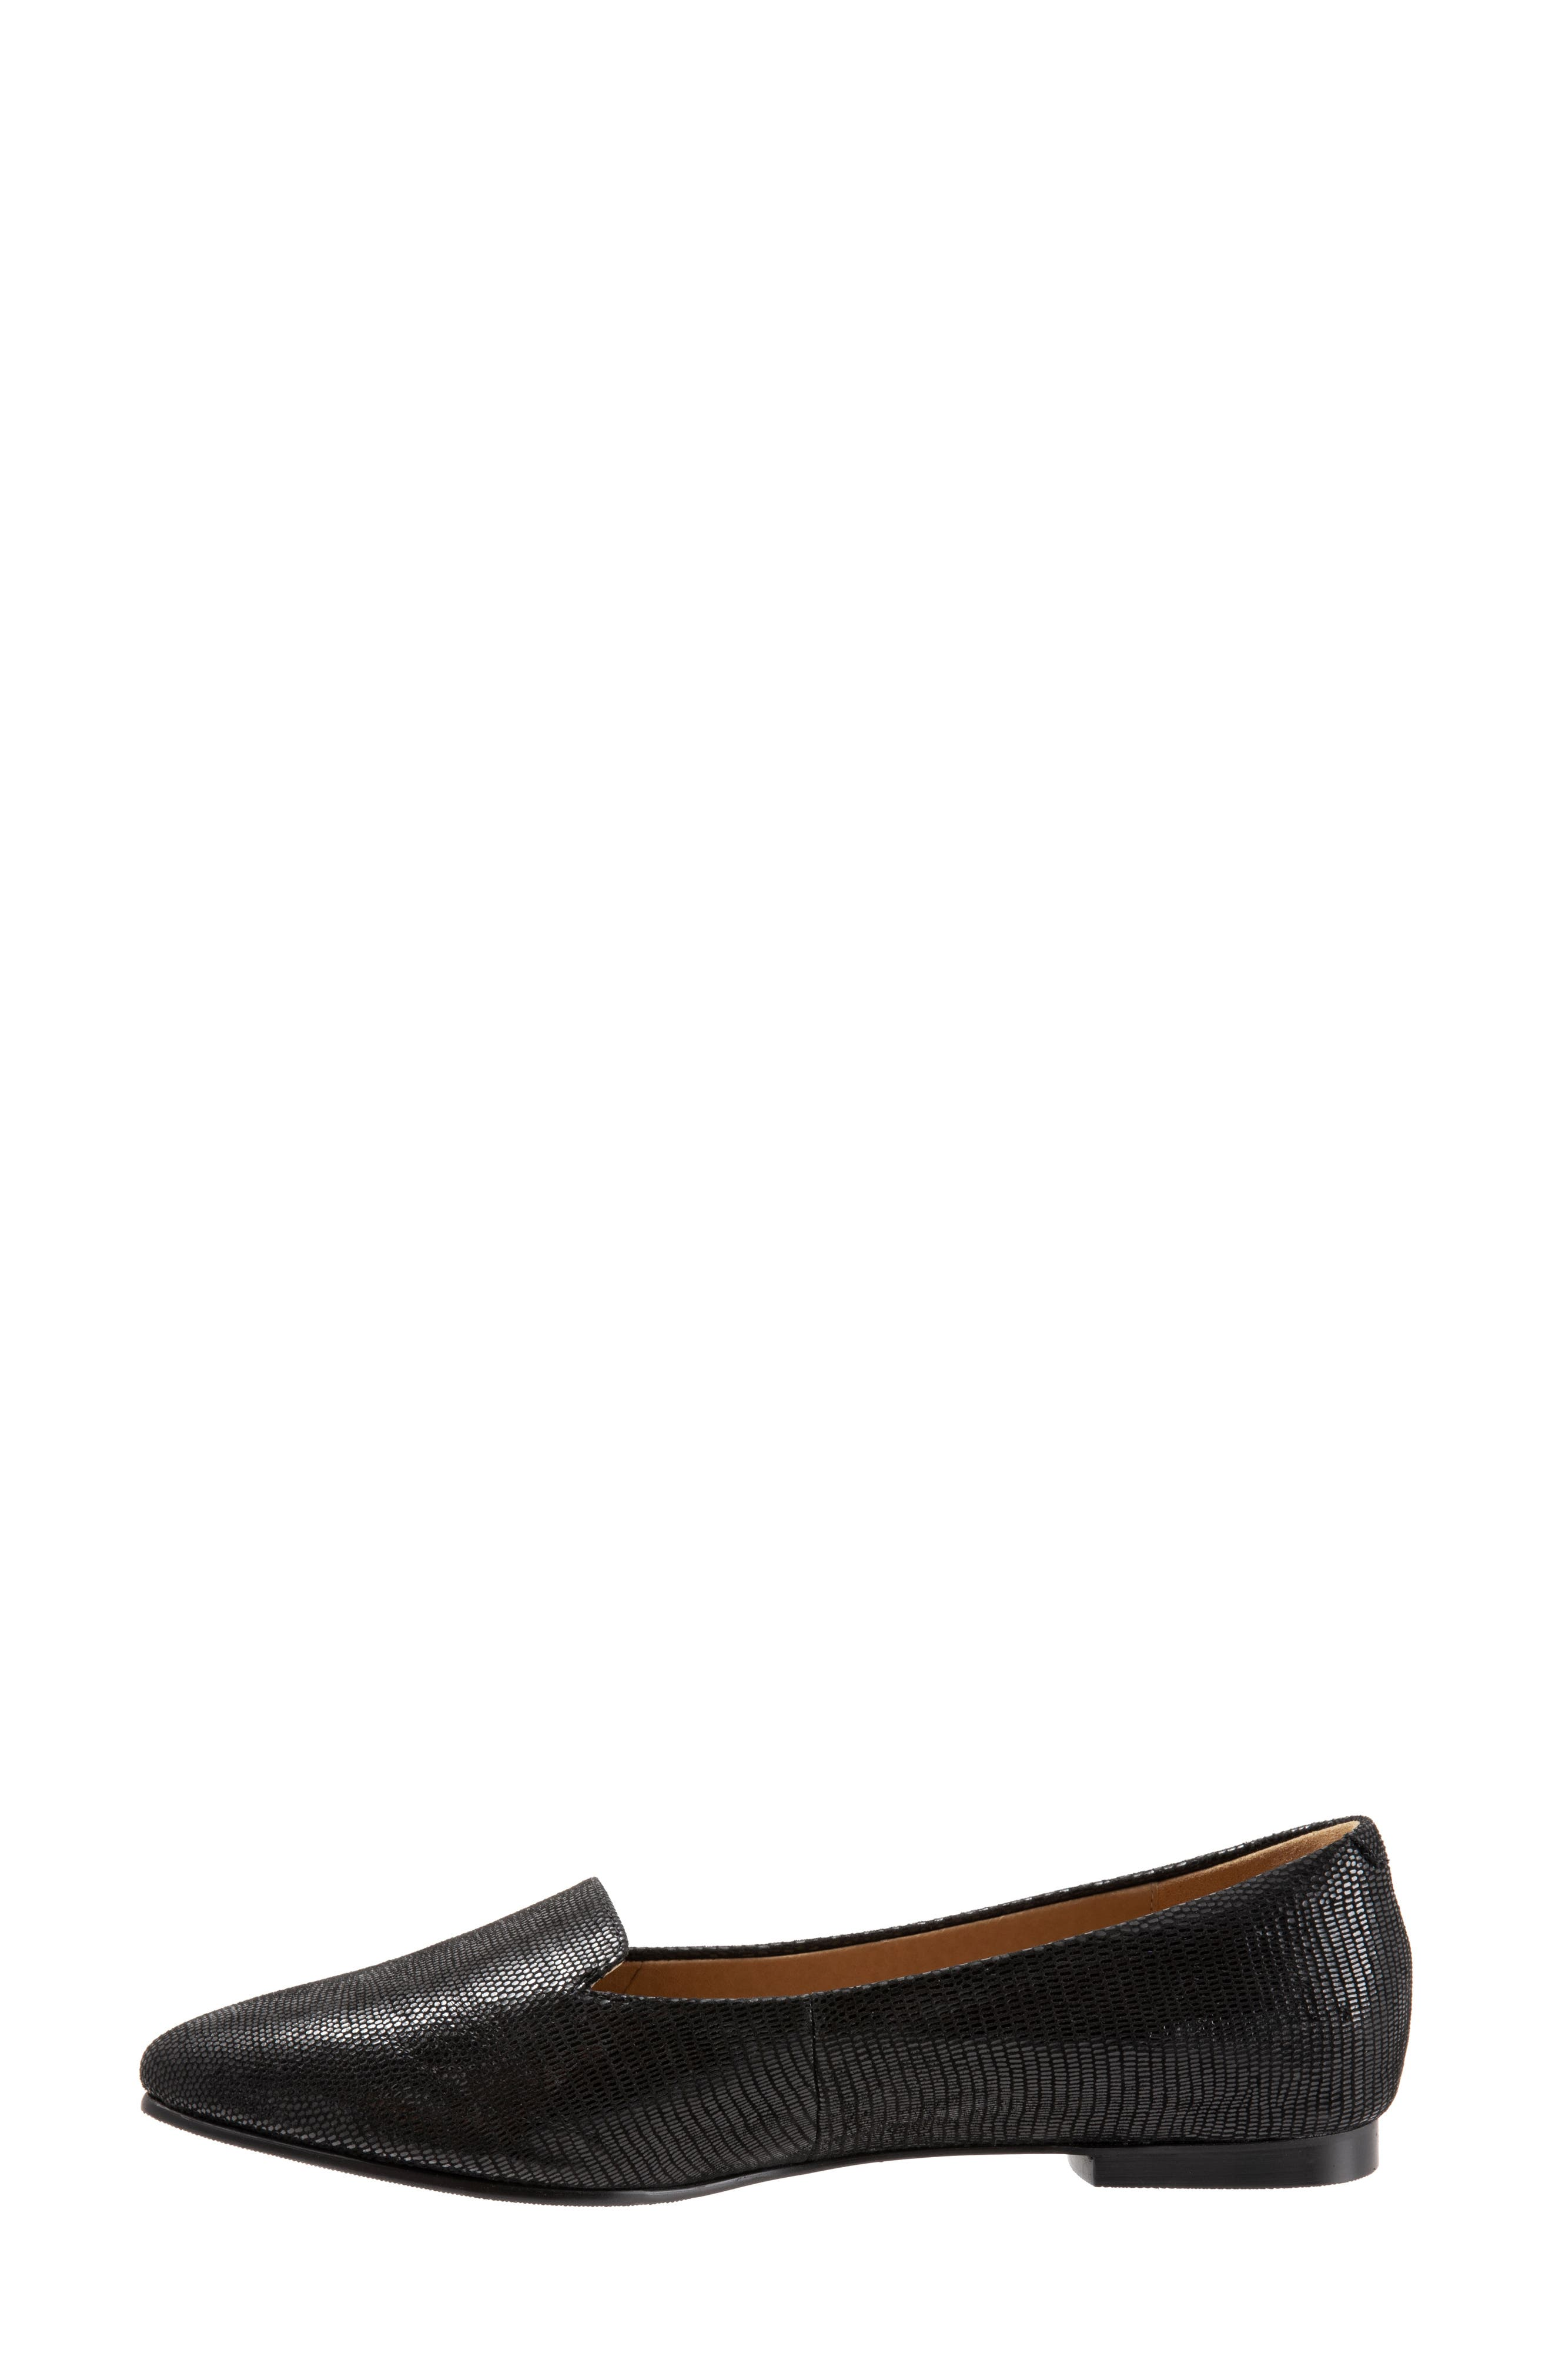 TROTTERS, Harlowe Pointy Toe Loafer, Alternate thumbnail 3, color, DARK BLACK LEATHER